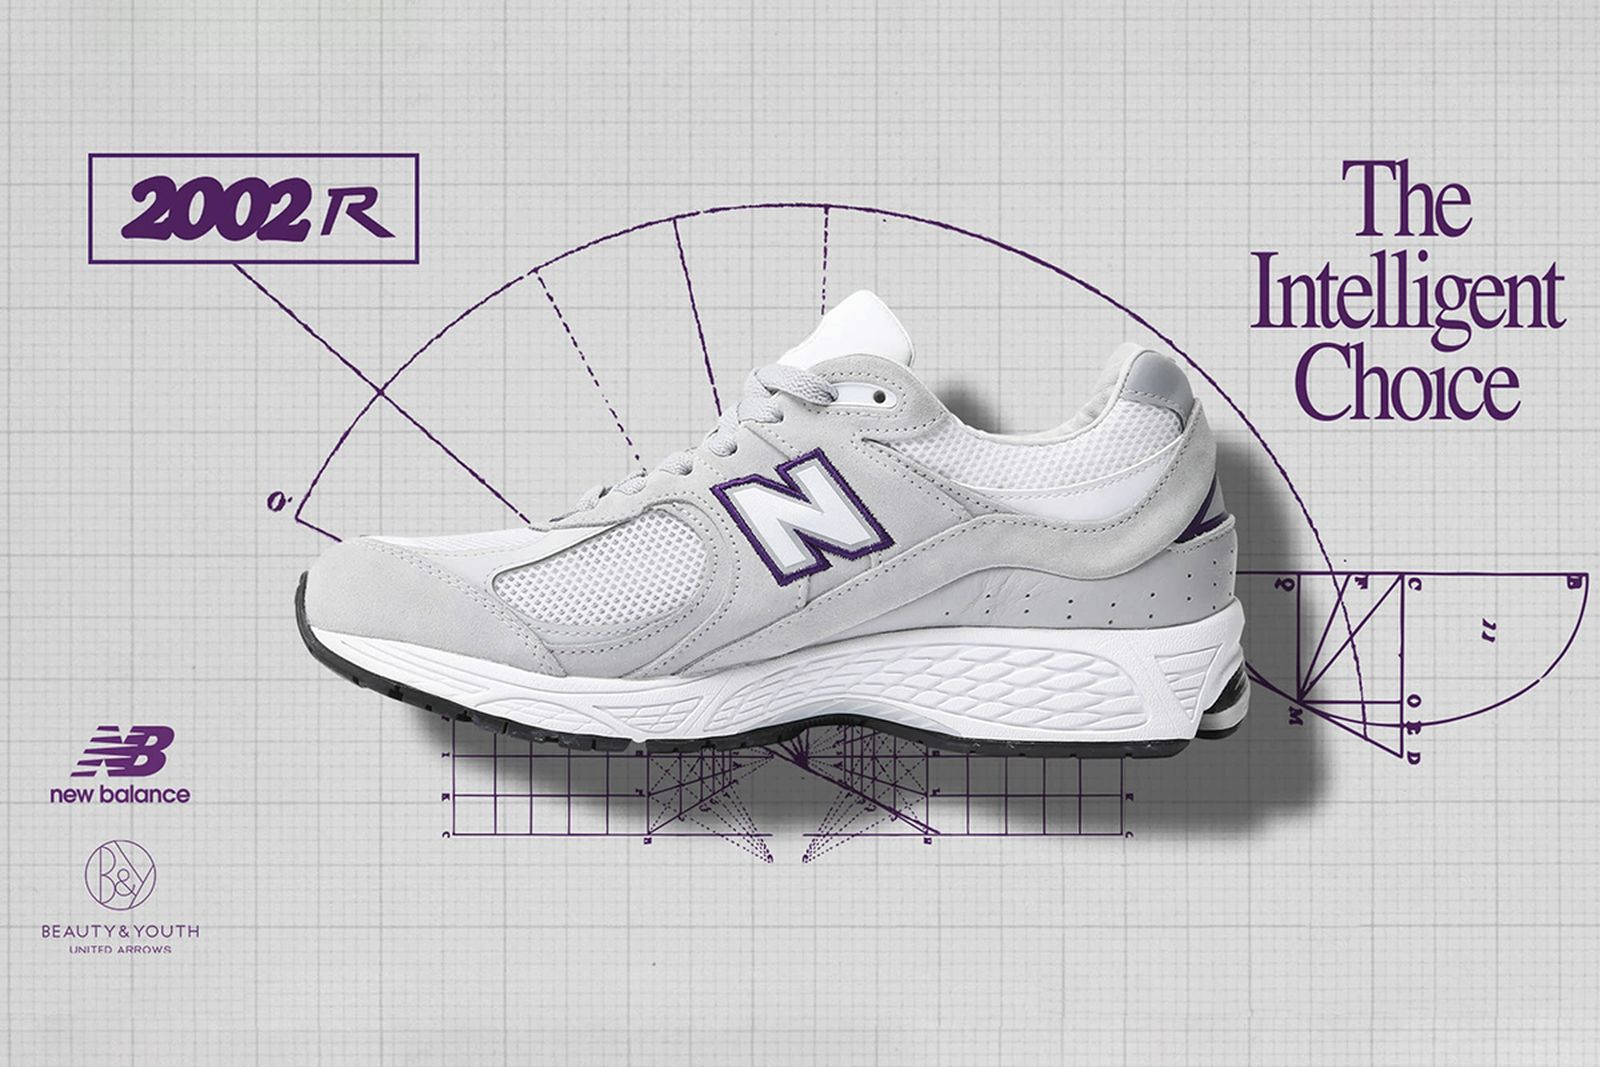 beauty youth united arrows new balance 2002r collab (2)